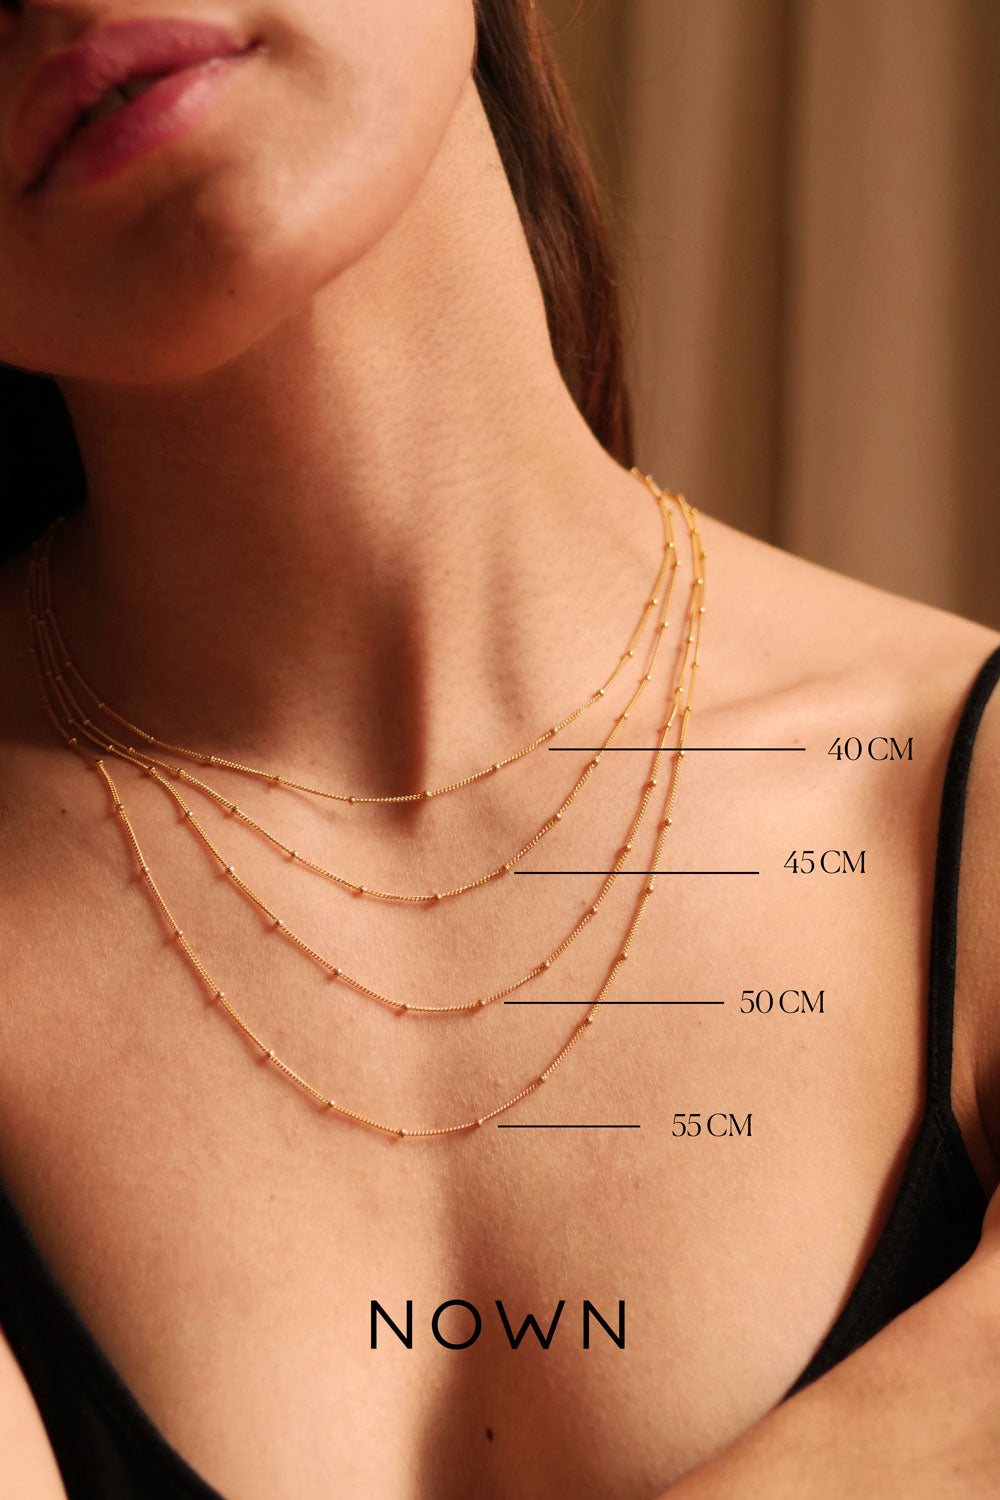 model wearing a collection of sizes of a gold filled necklace